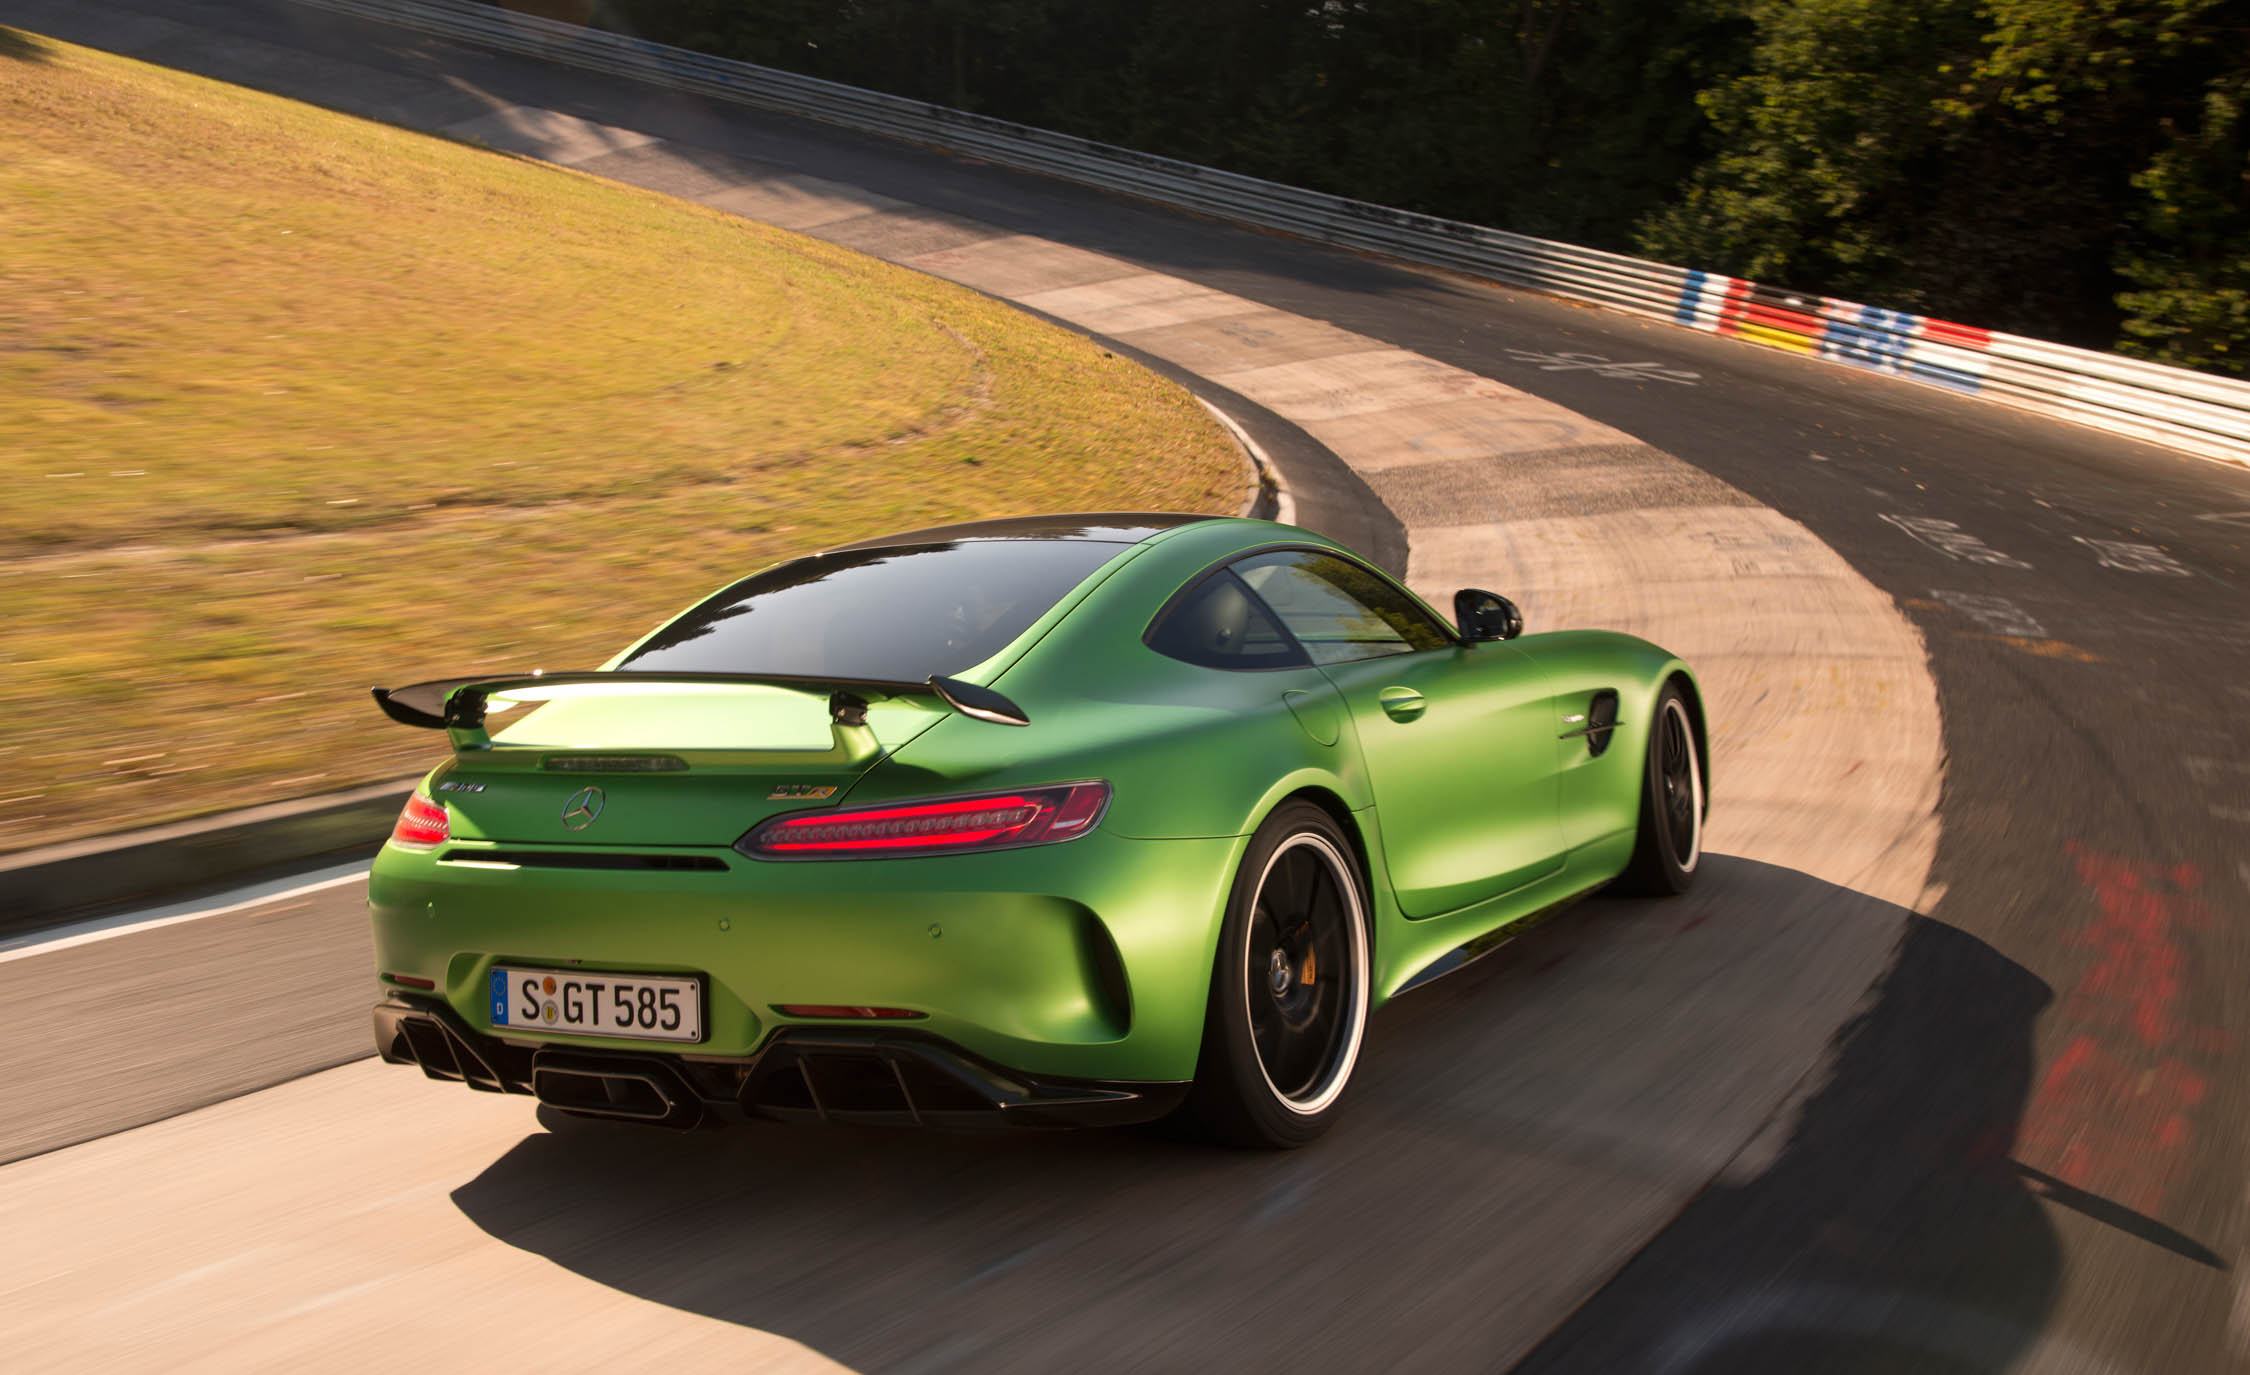 2017 Mercedes Amg Gt R Curcuit Test Rear Side View (Photo 8 of 22)